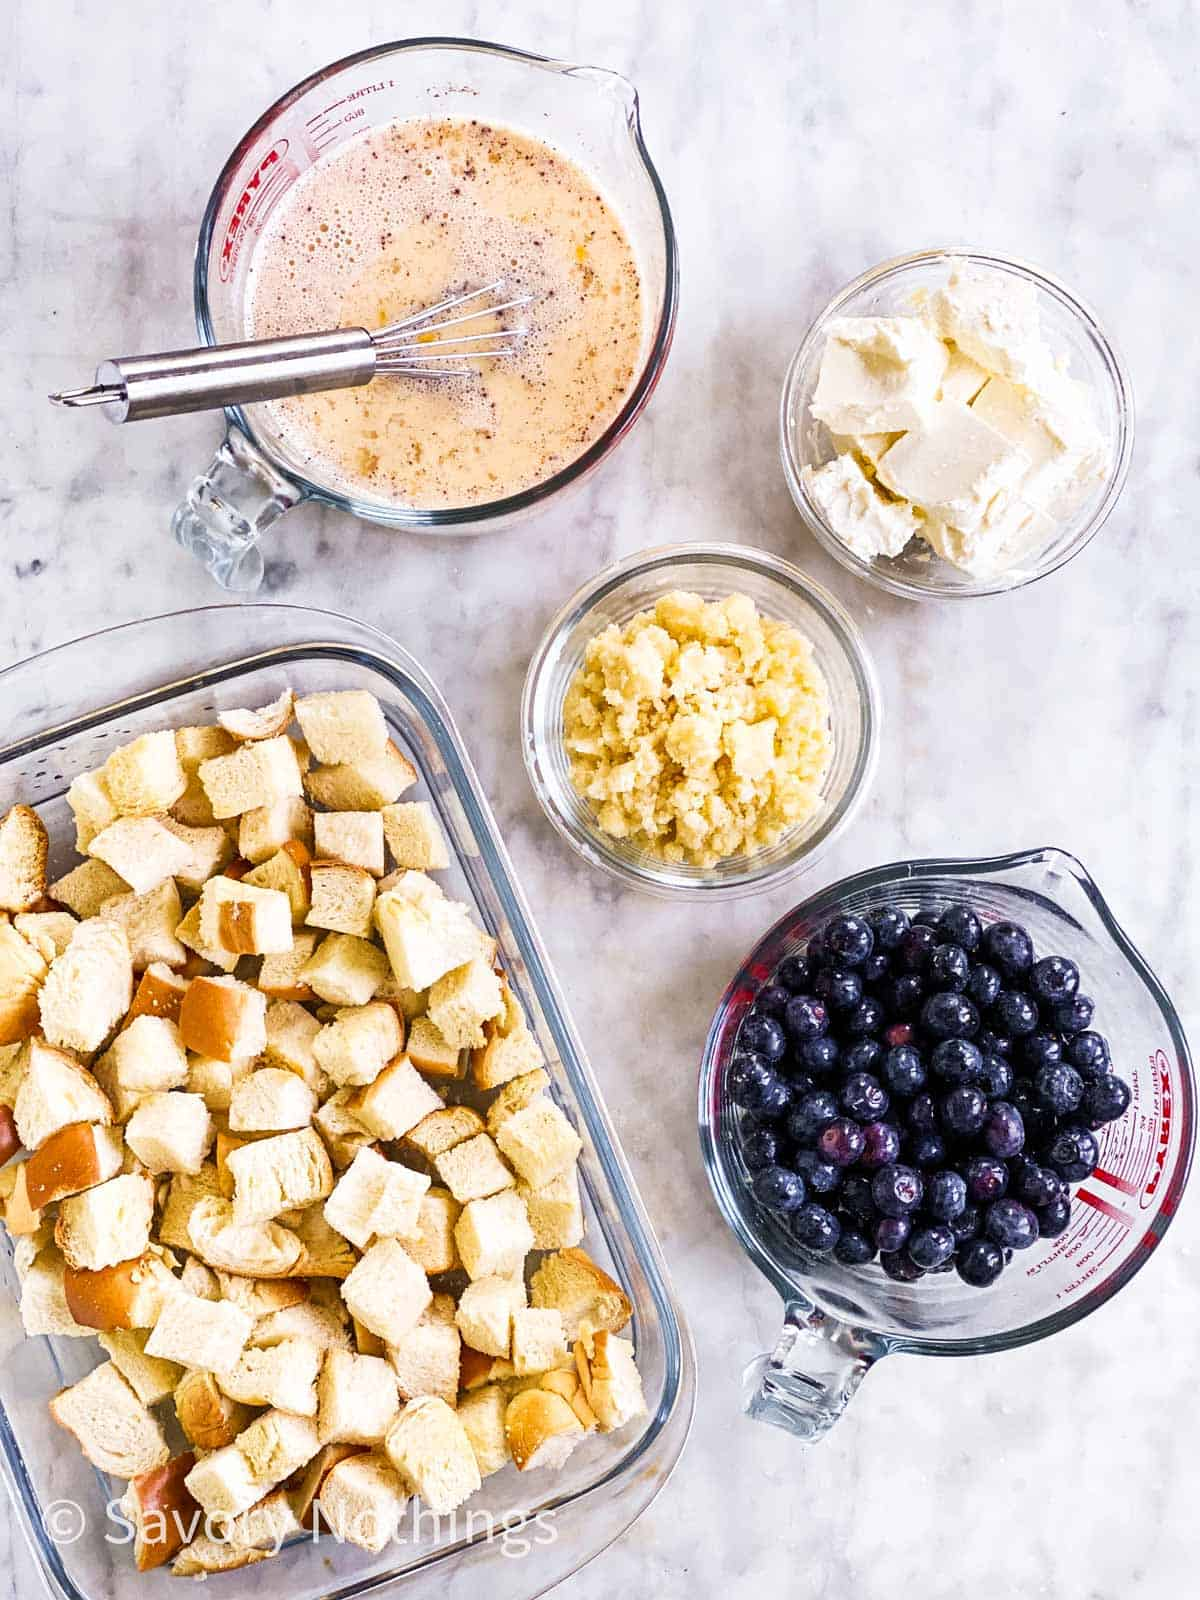 prepared ingredients for a blueberry French toast casserole on a white marble surface